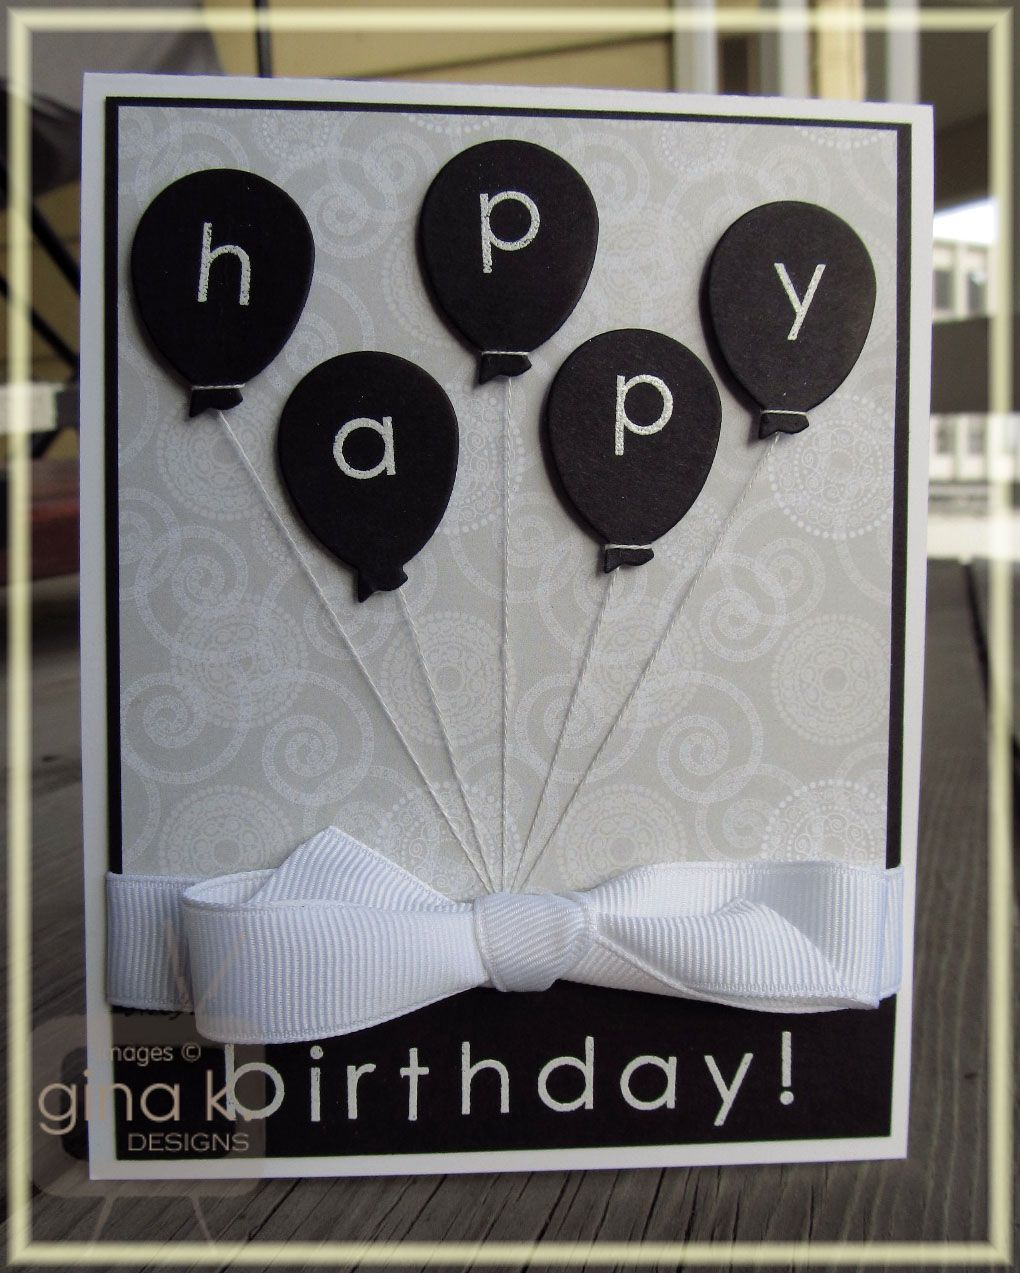 Pin by eva dobson on cards pinterest birthdays cards and card ideas